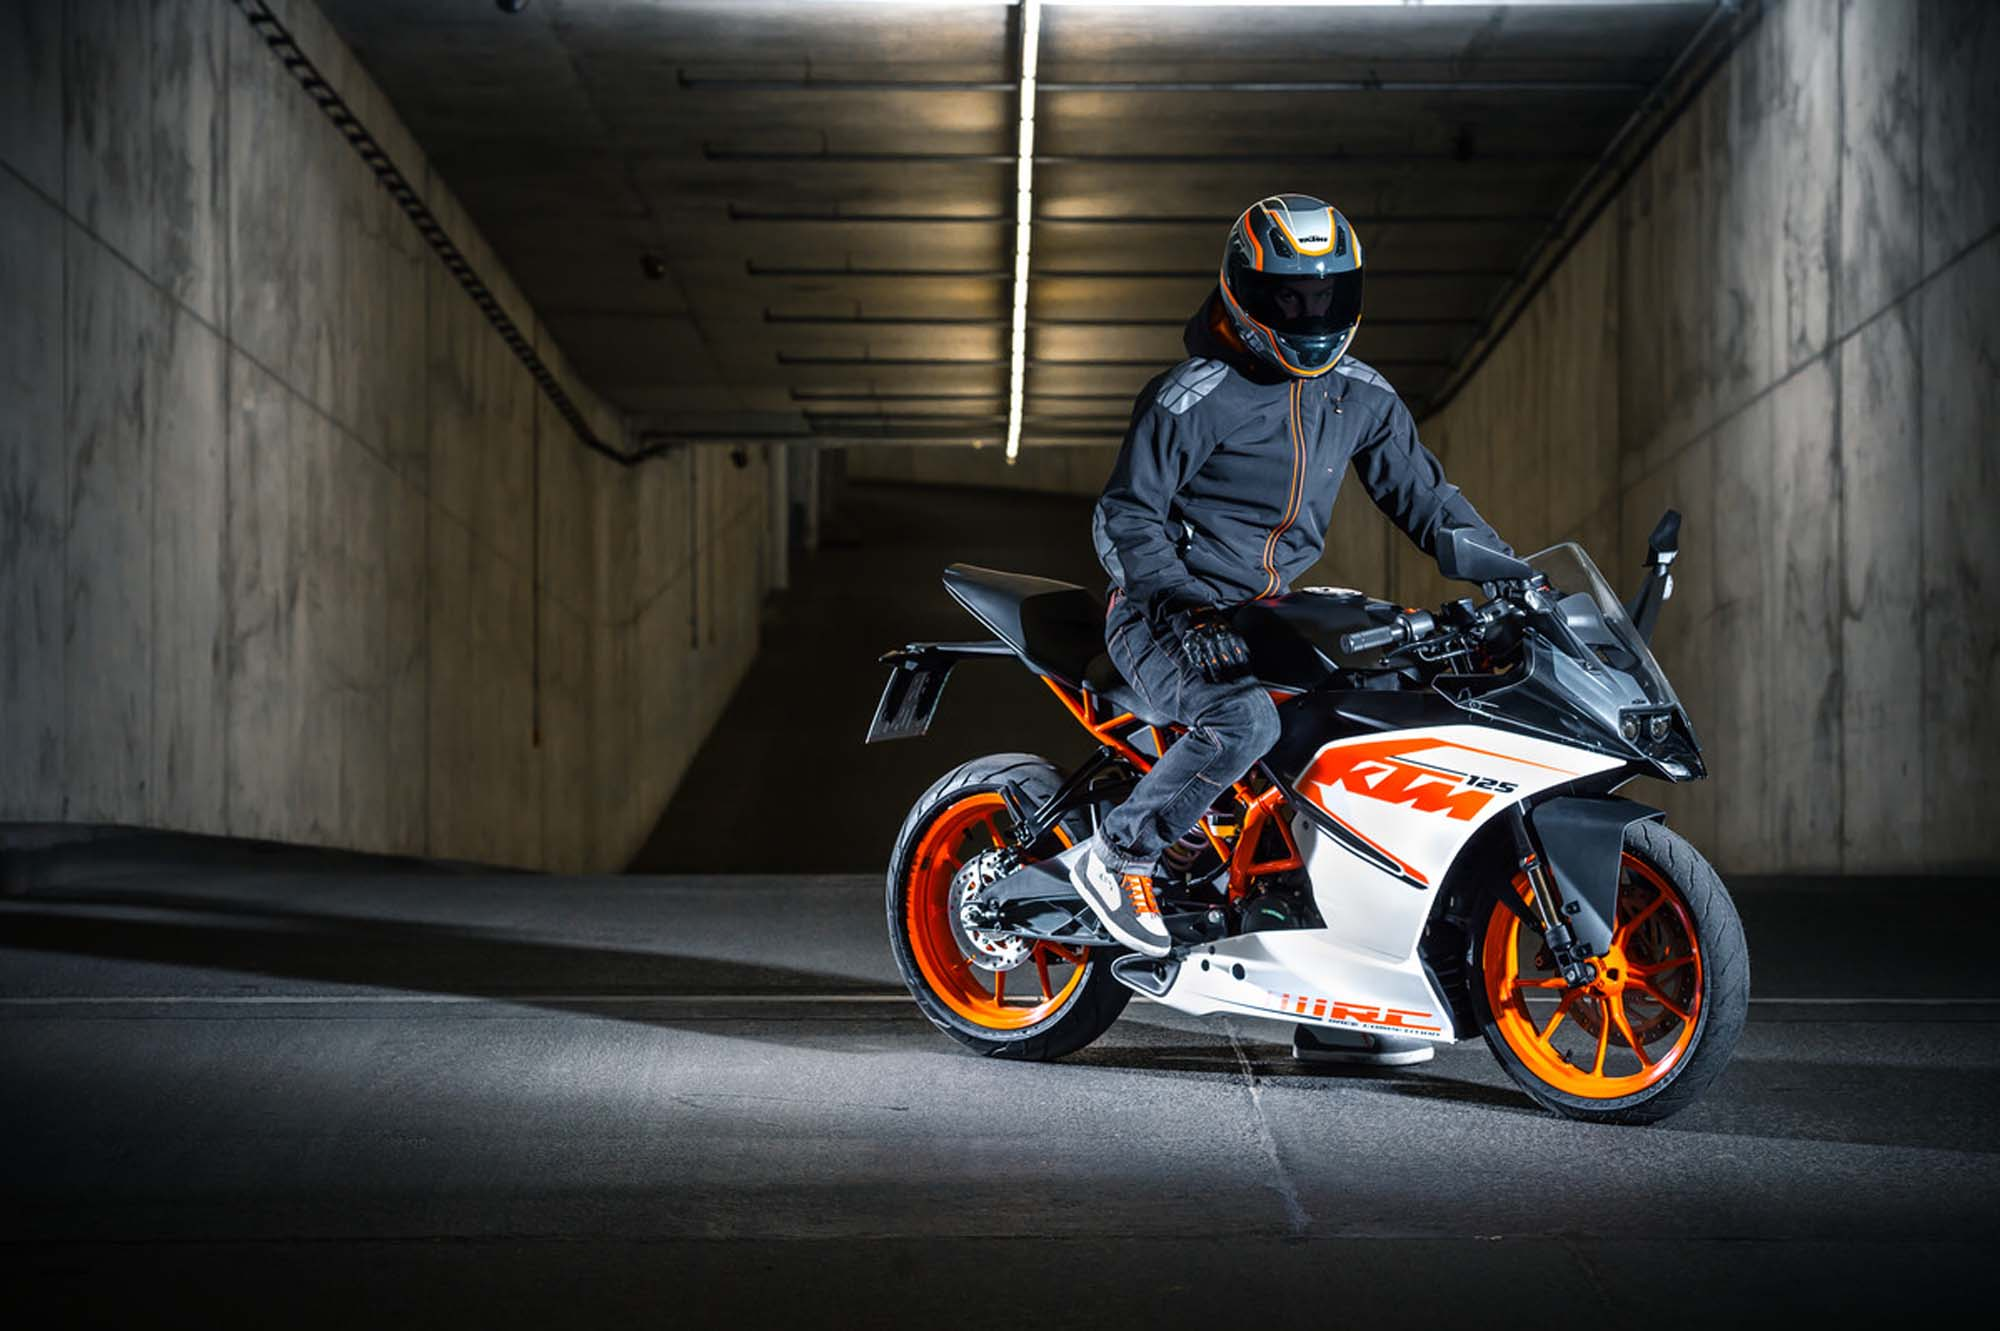 ktm rc 125 all technical data of the model rc 125 from ktm. Black Bedroom Furniture Sets. Home Design Ideas